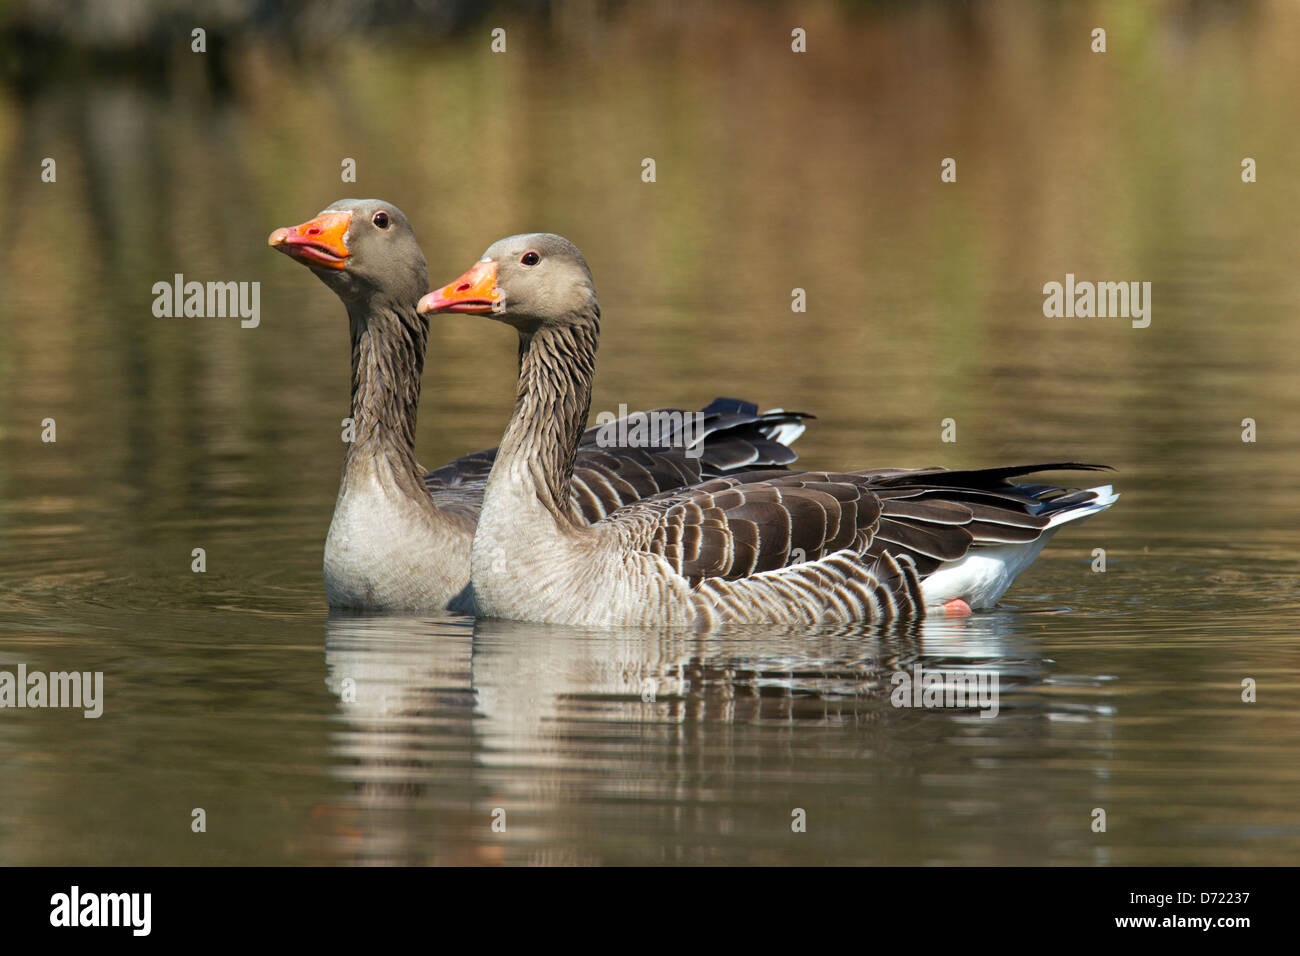 Two Greylag Geese / Graylag Goose (Anser anser) swimming in lake Stock Photo